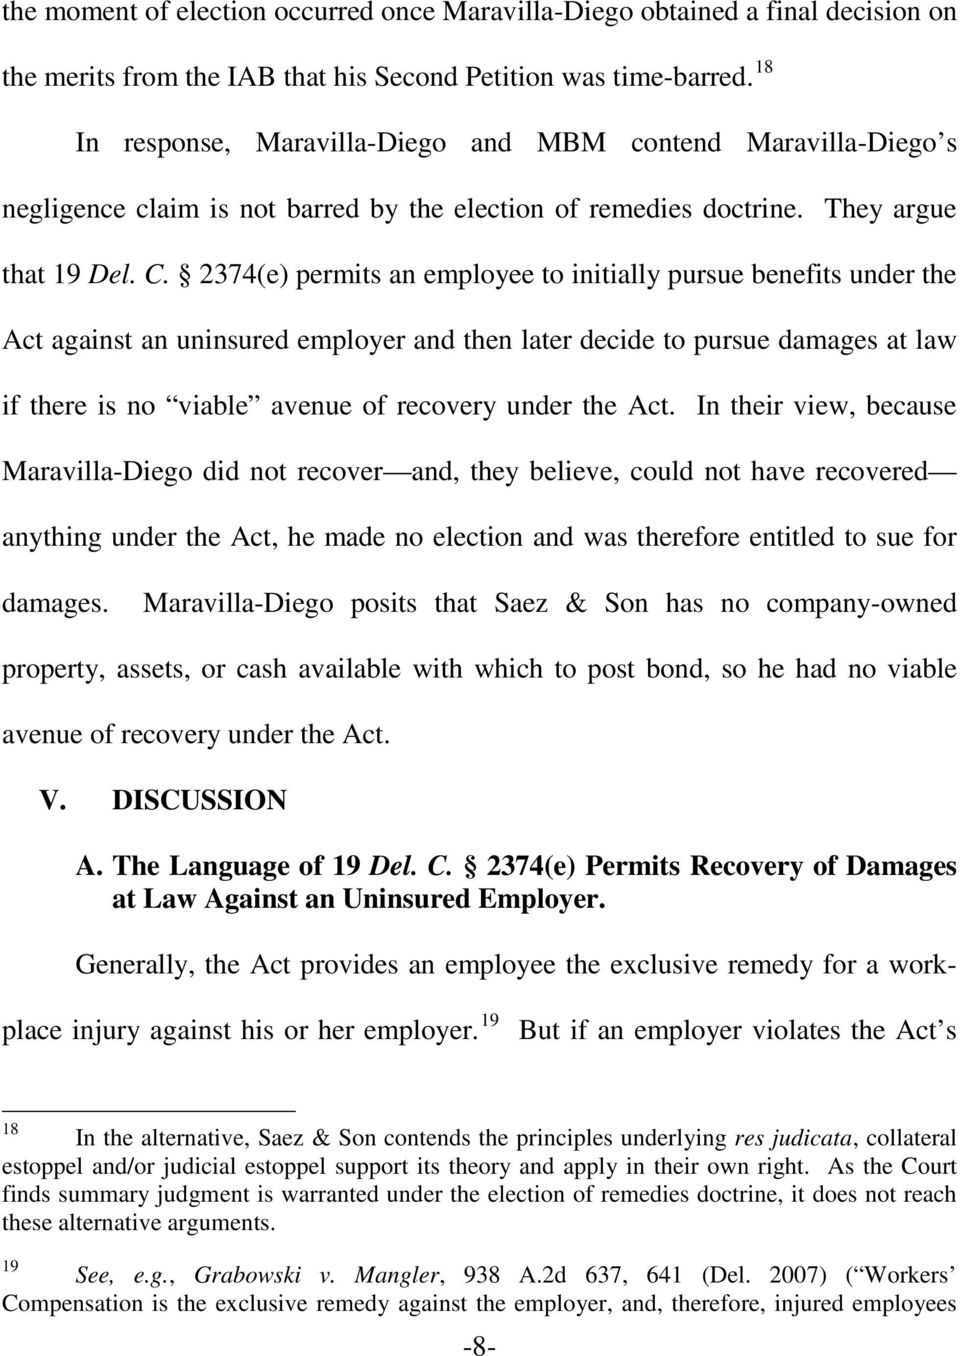 2374(e) permits an employee to initially pursue benefits under the Act against an uninsured employer and then later decide to pursue damages at law if there is no viable avenue of recovery under the